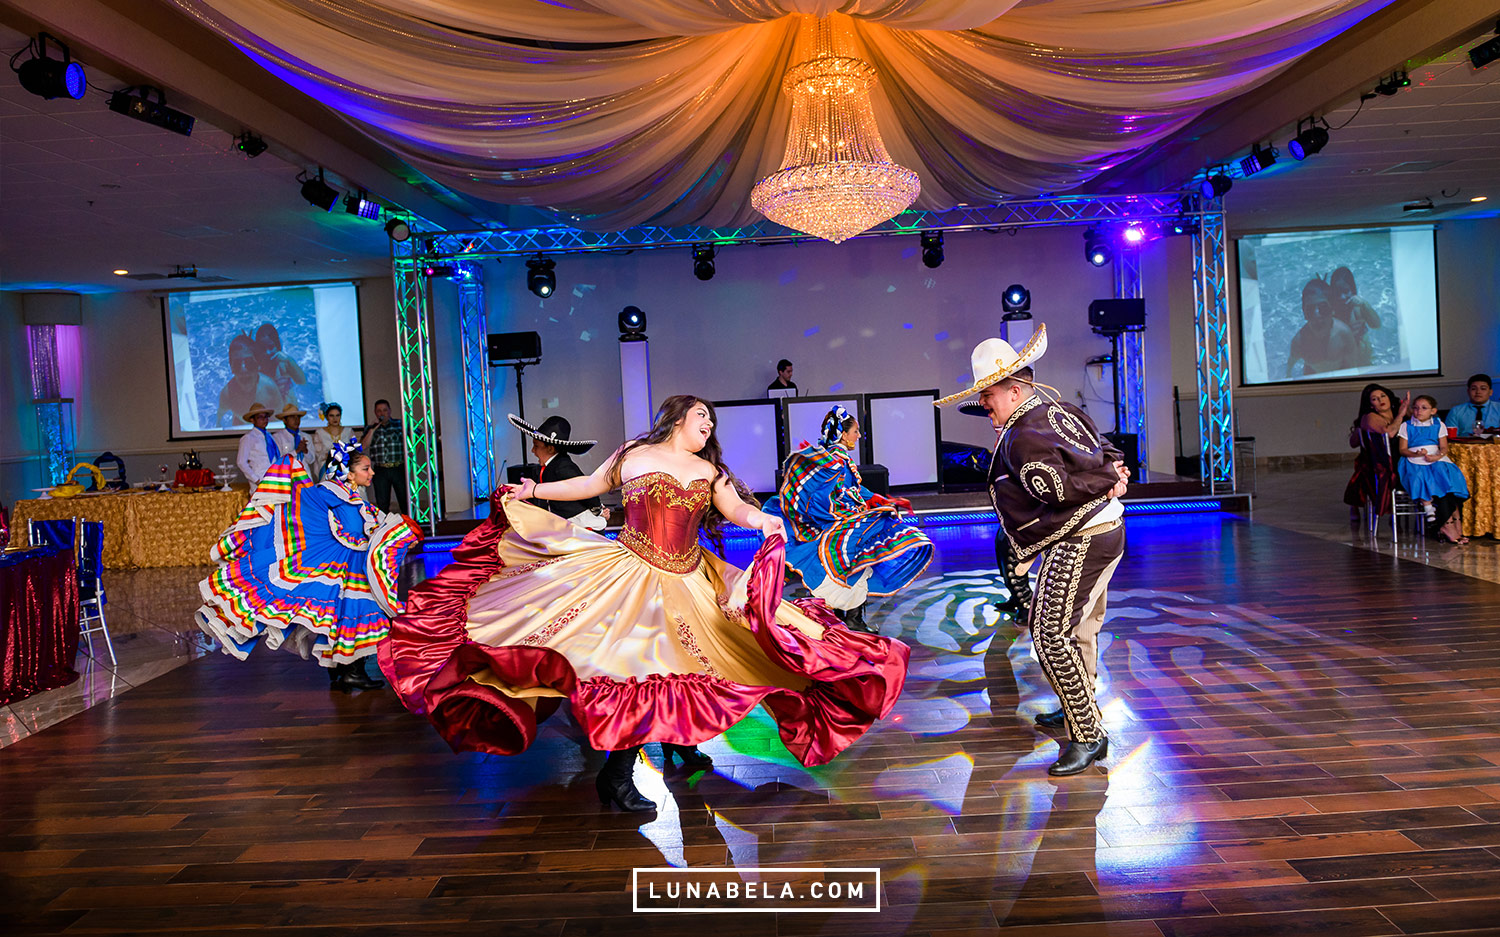 fotografo-de-quinceanera-lunabela-photography-houston-photographer-abygail12.jpg